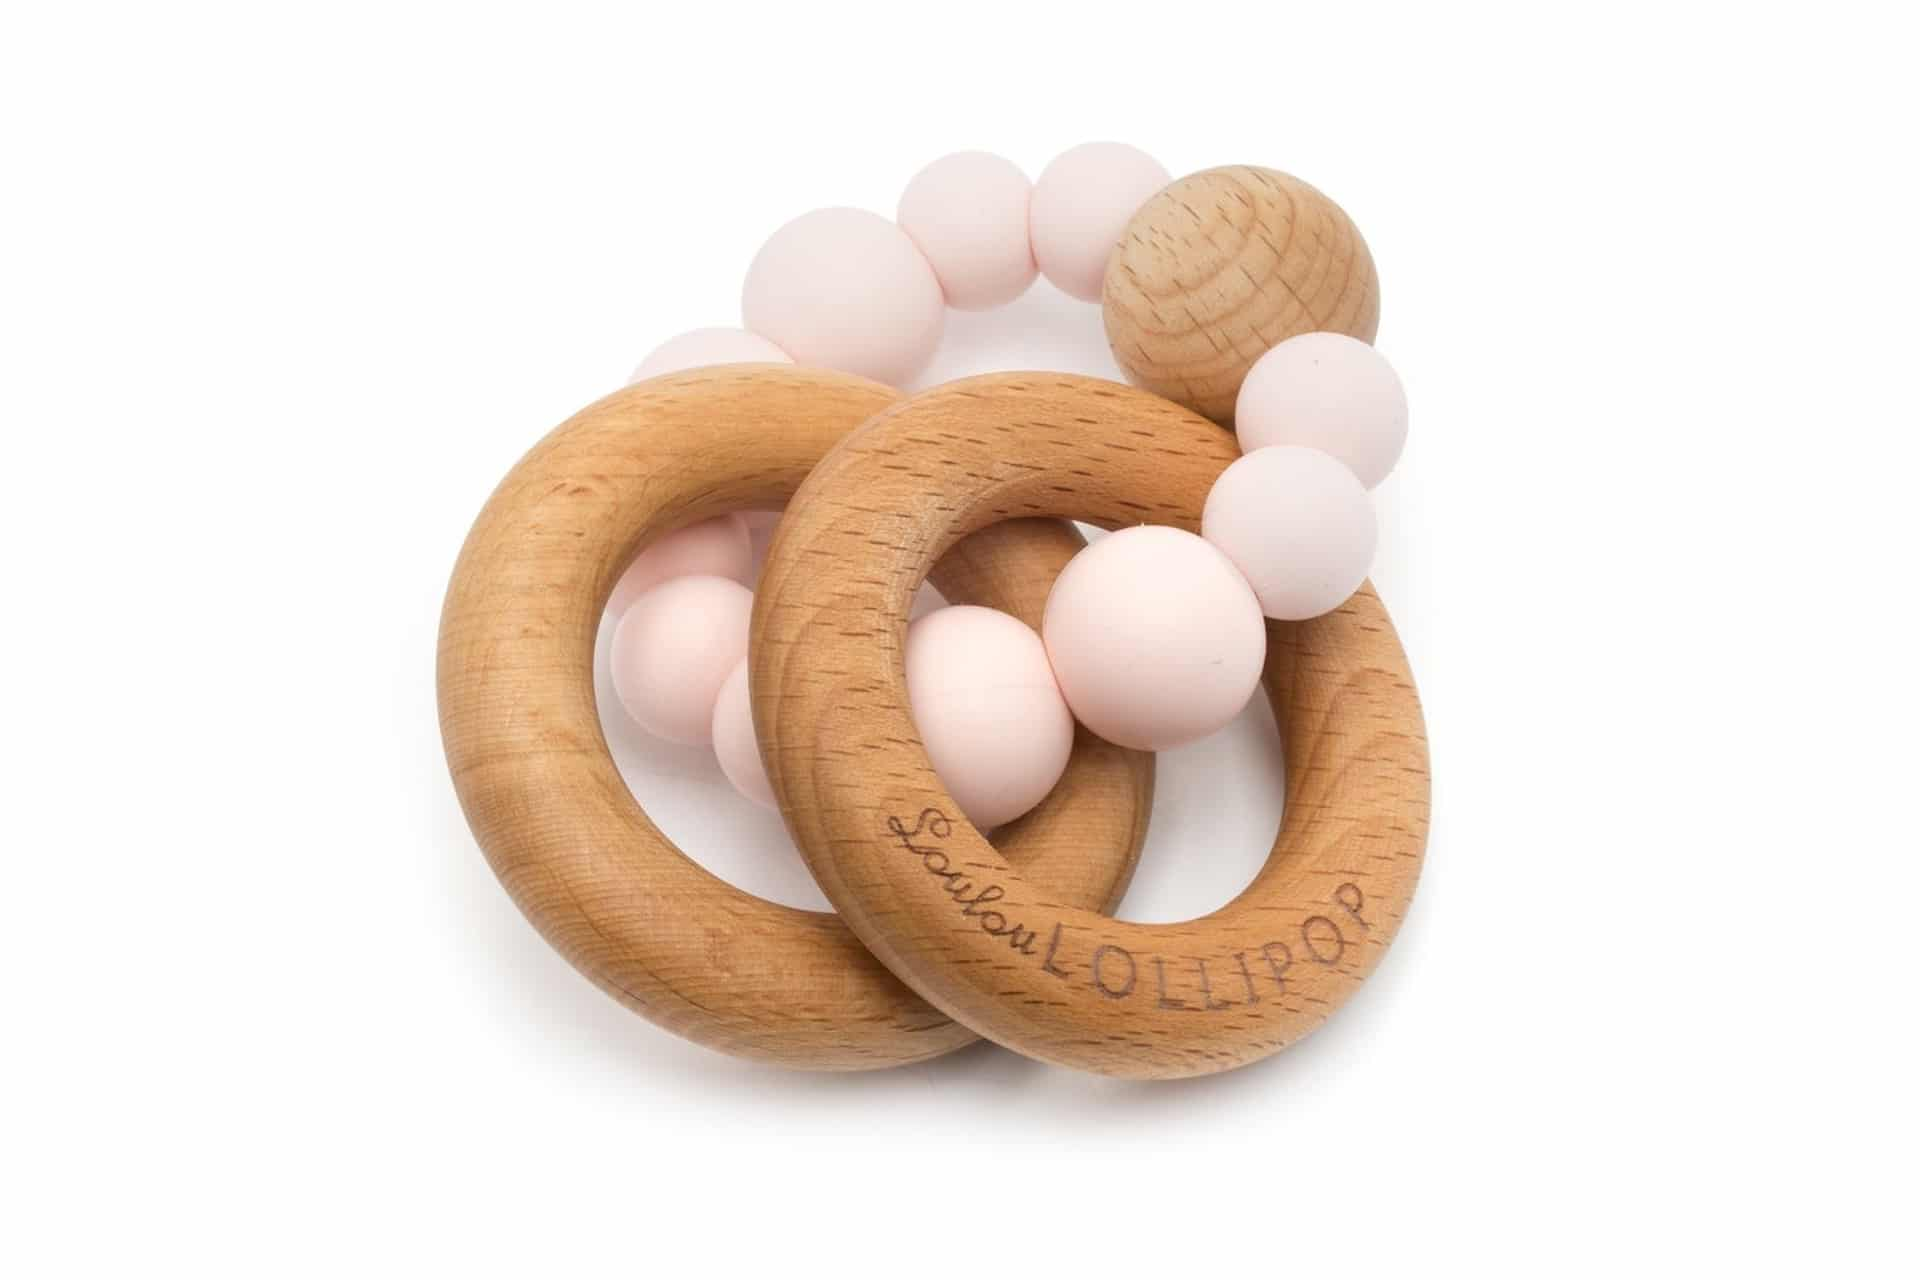 Bubble Silicone And Wood Teether in pinks and natural wood